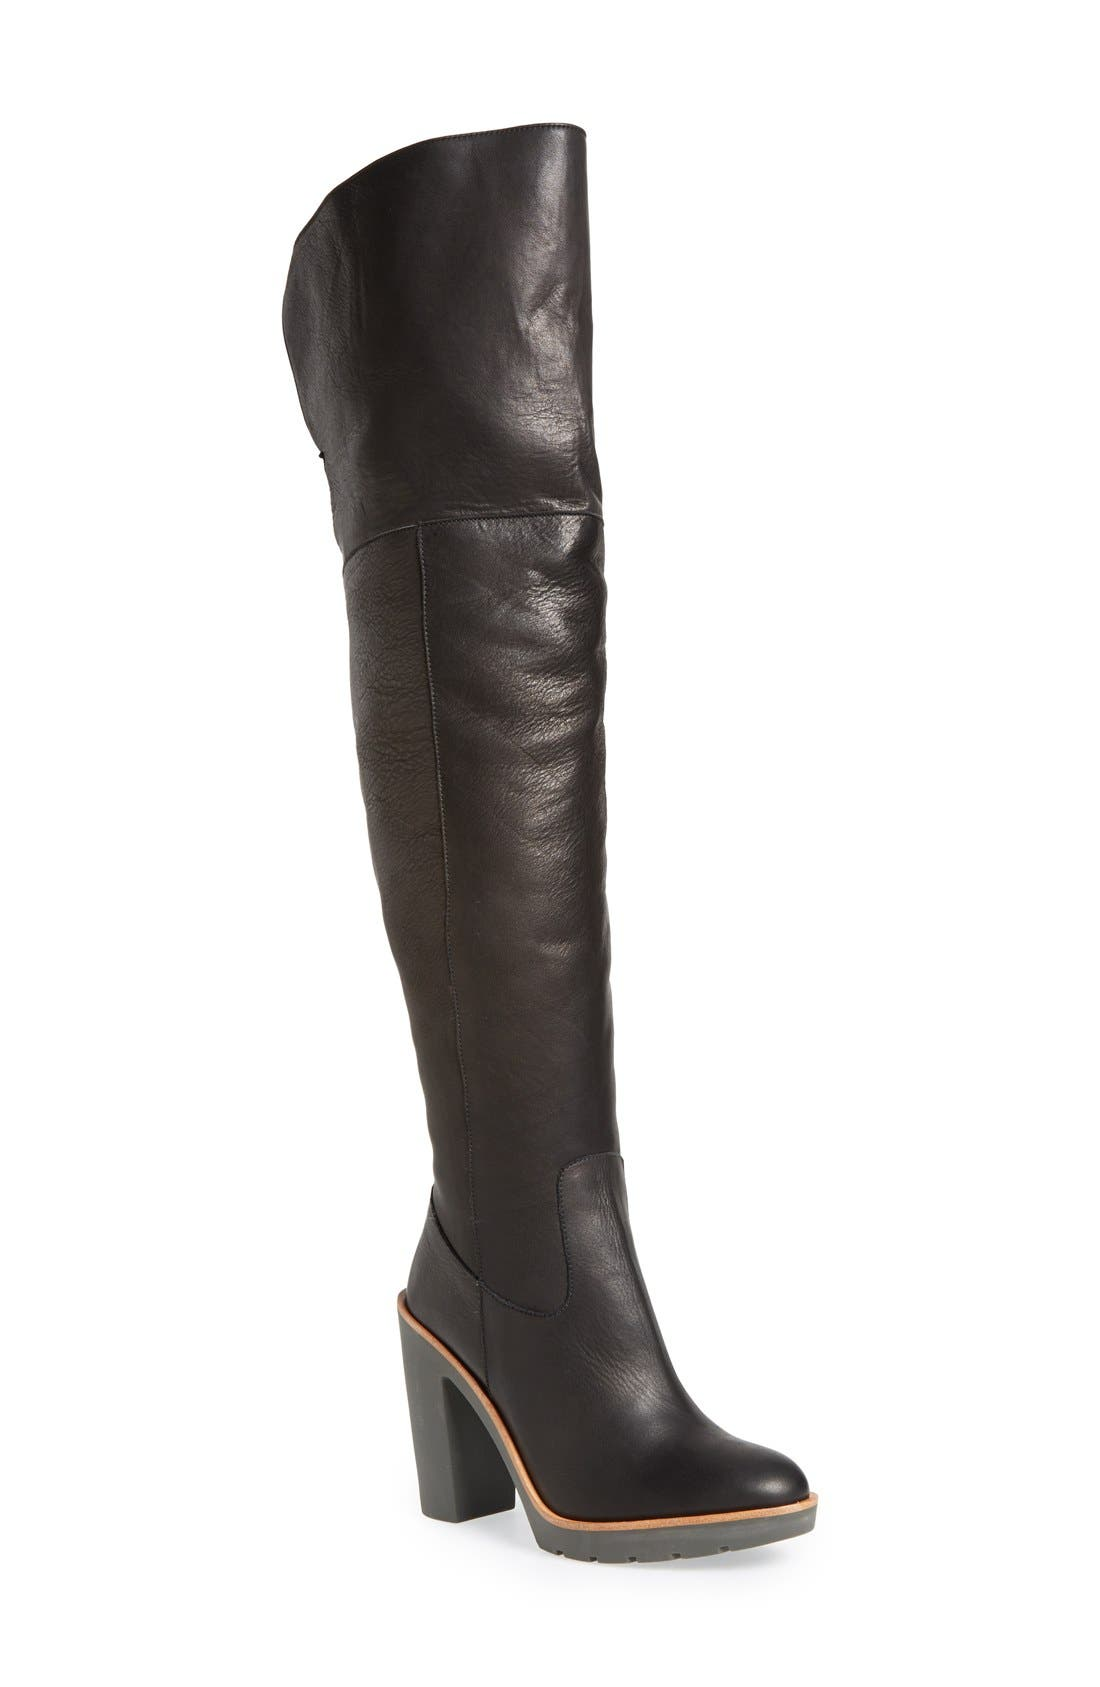 Alternate Image 1 Selected - kate spade new york 'gabby' genuine shearling lined over the knee boot (Women)